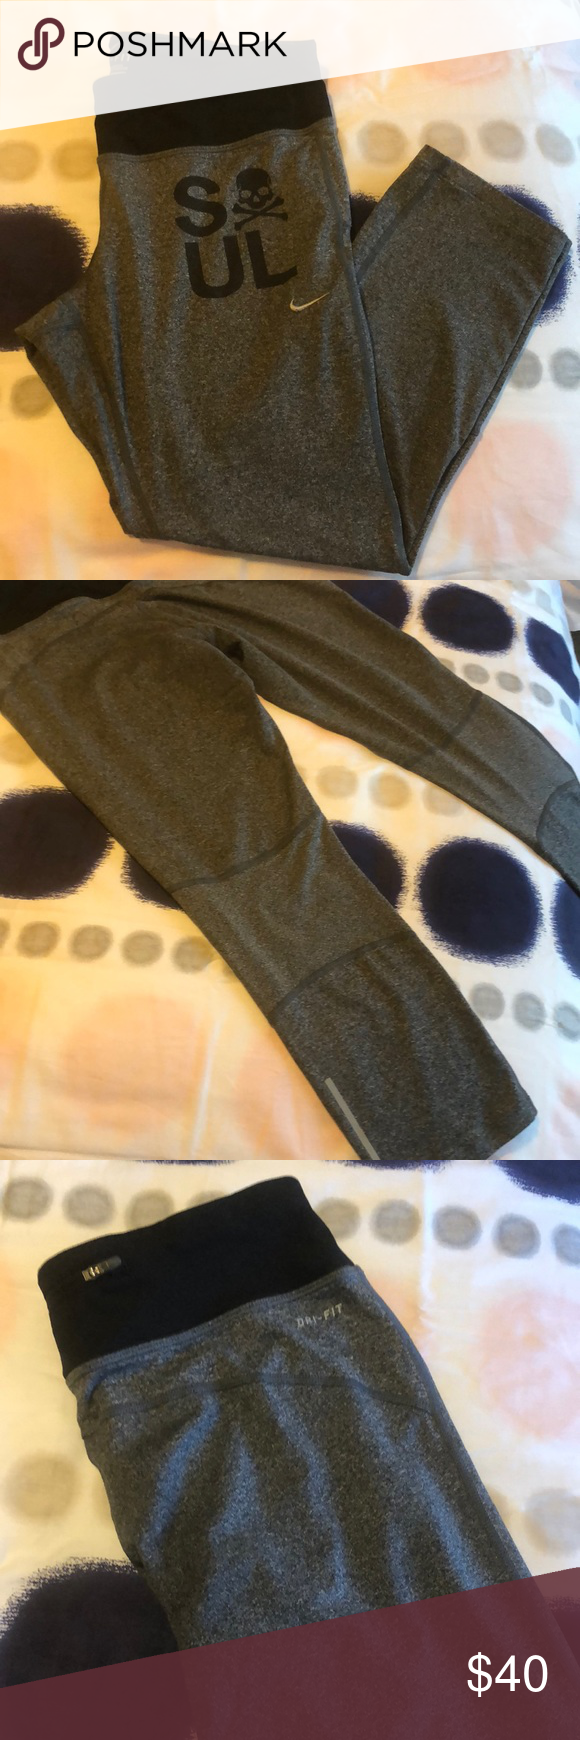 on sale a3dd7 83836 Nike x SoulCycle Dri-Fit Capris. Black waistband with drawstring and pocket  in rear. Heathered grey leg with black SoulCycle wordings and skull  branding.